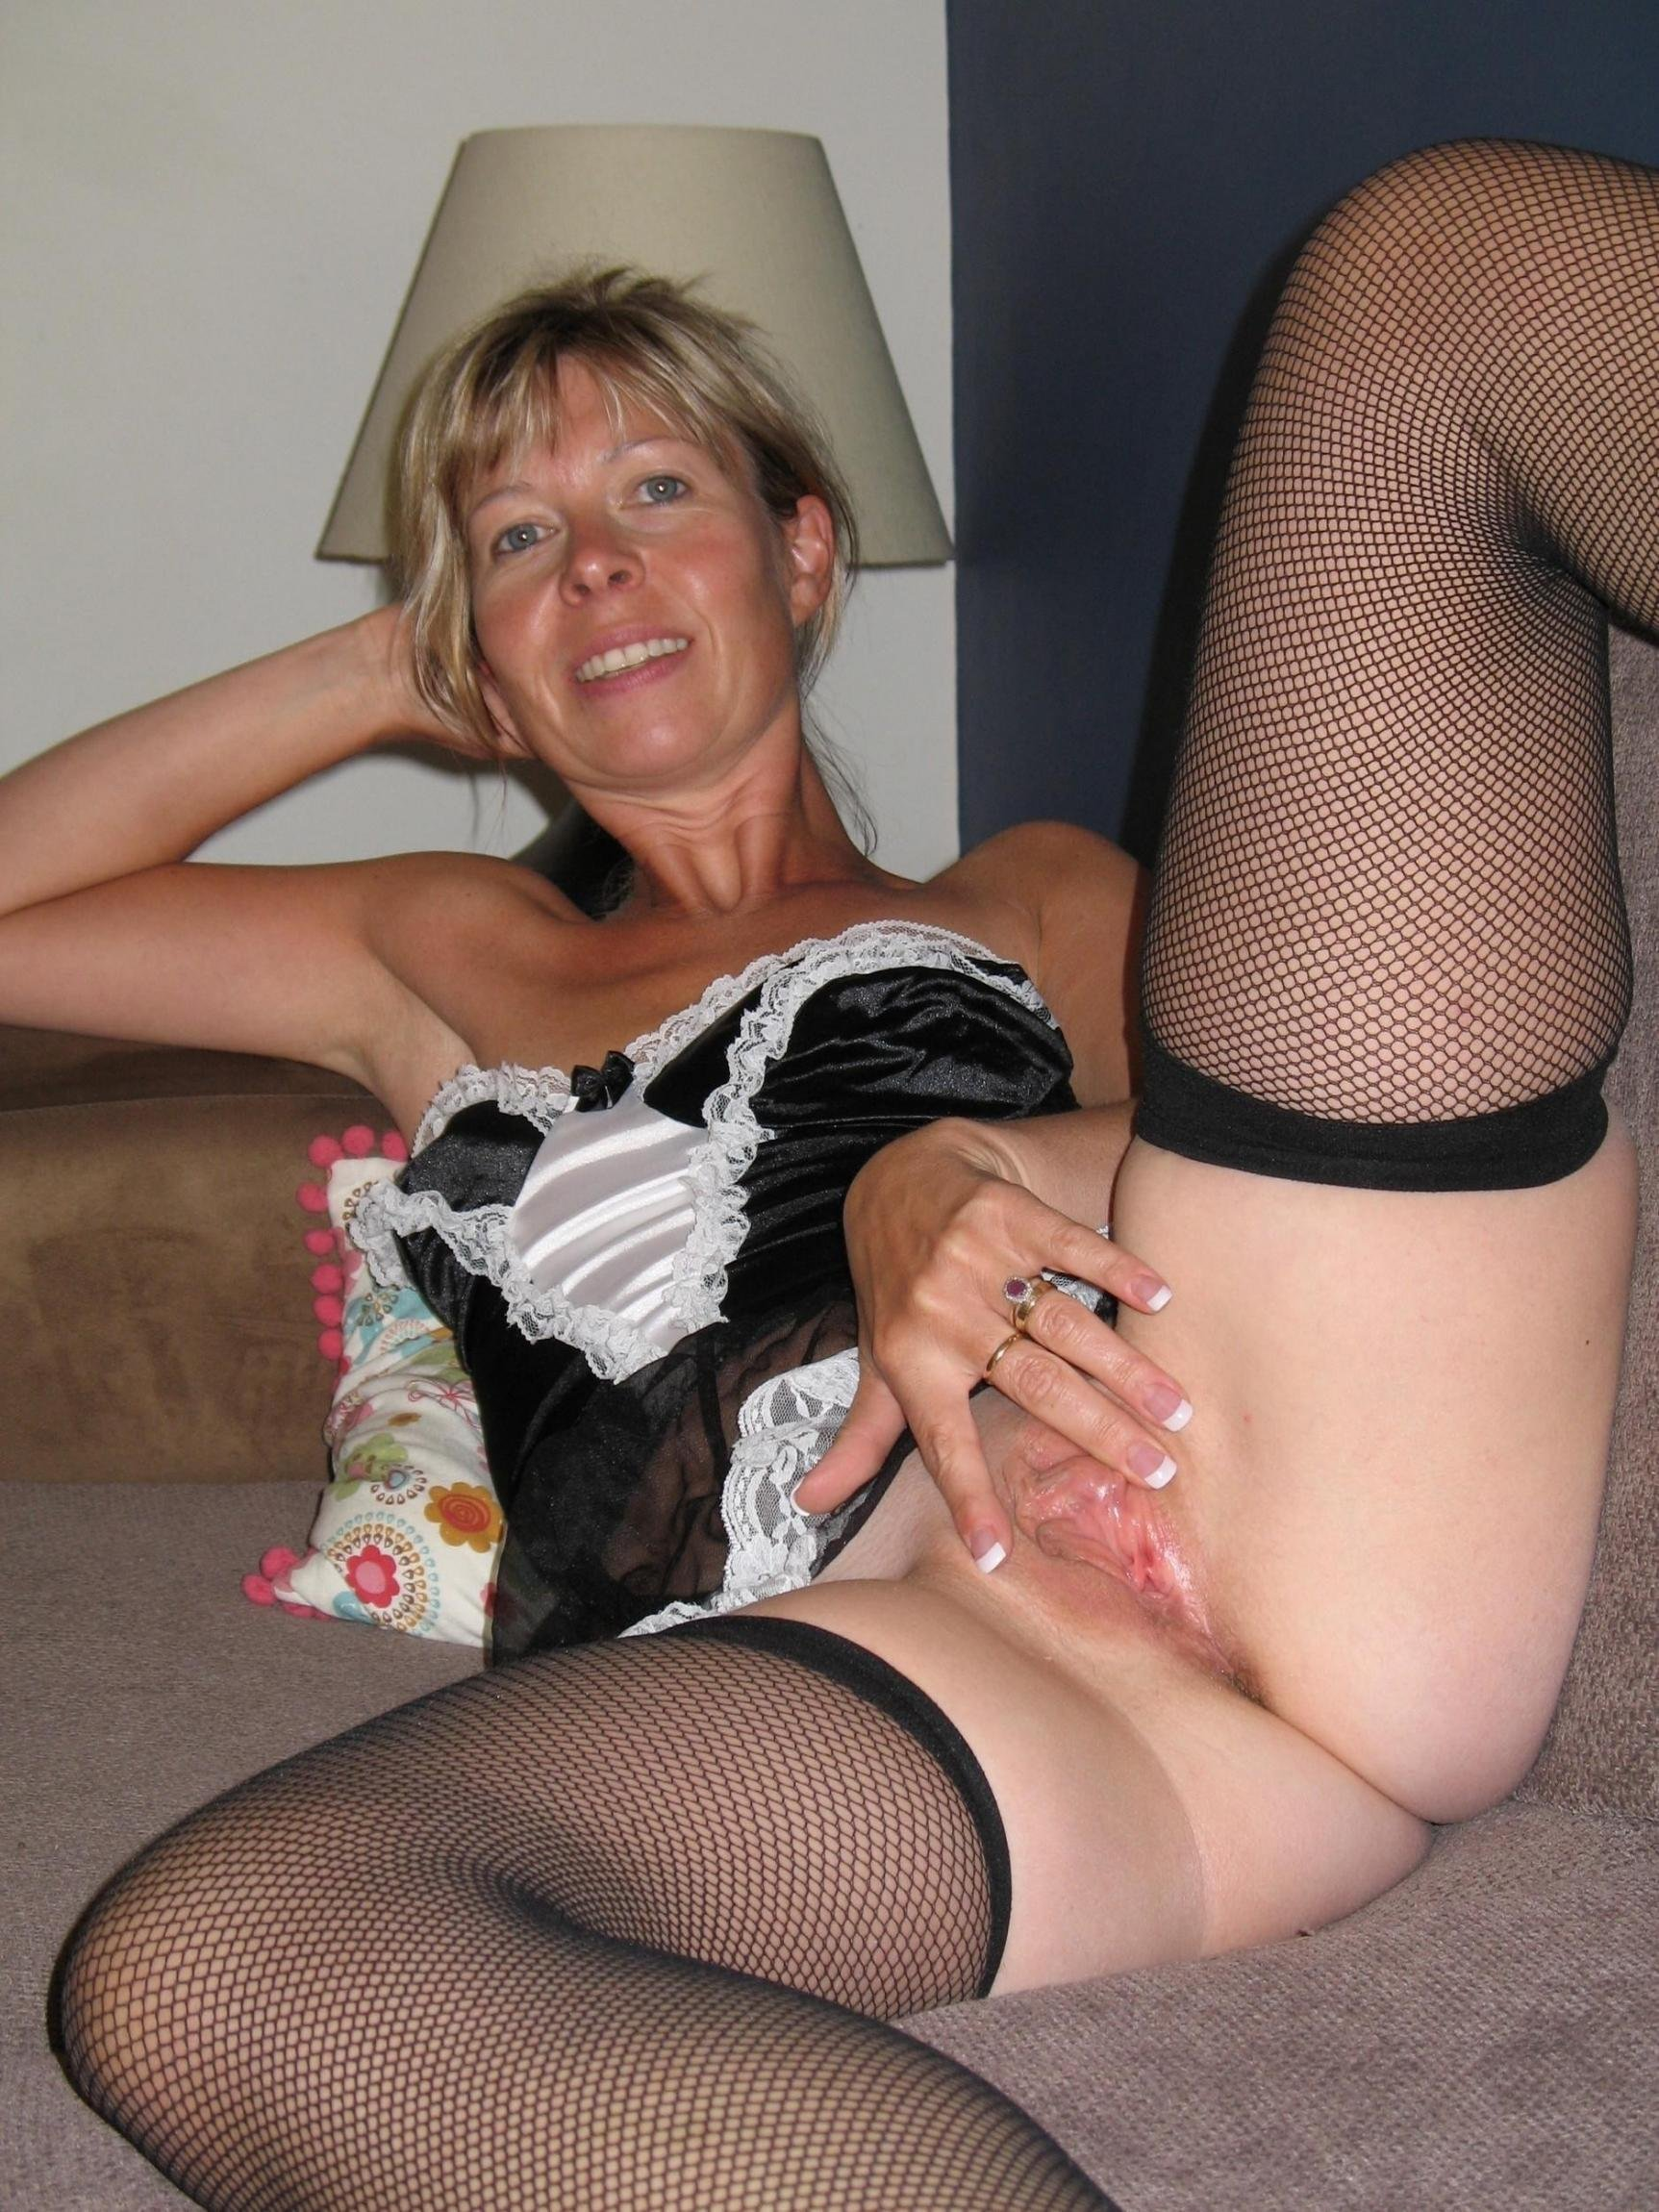 Punished cheating stepmom #1